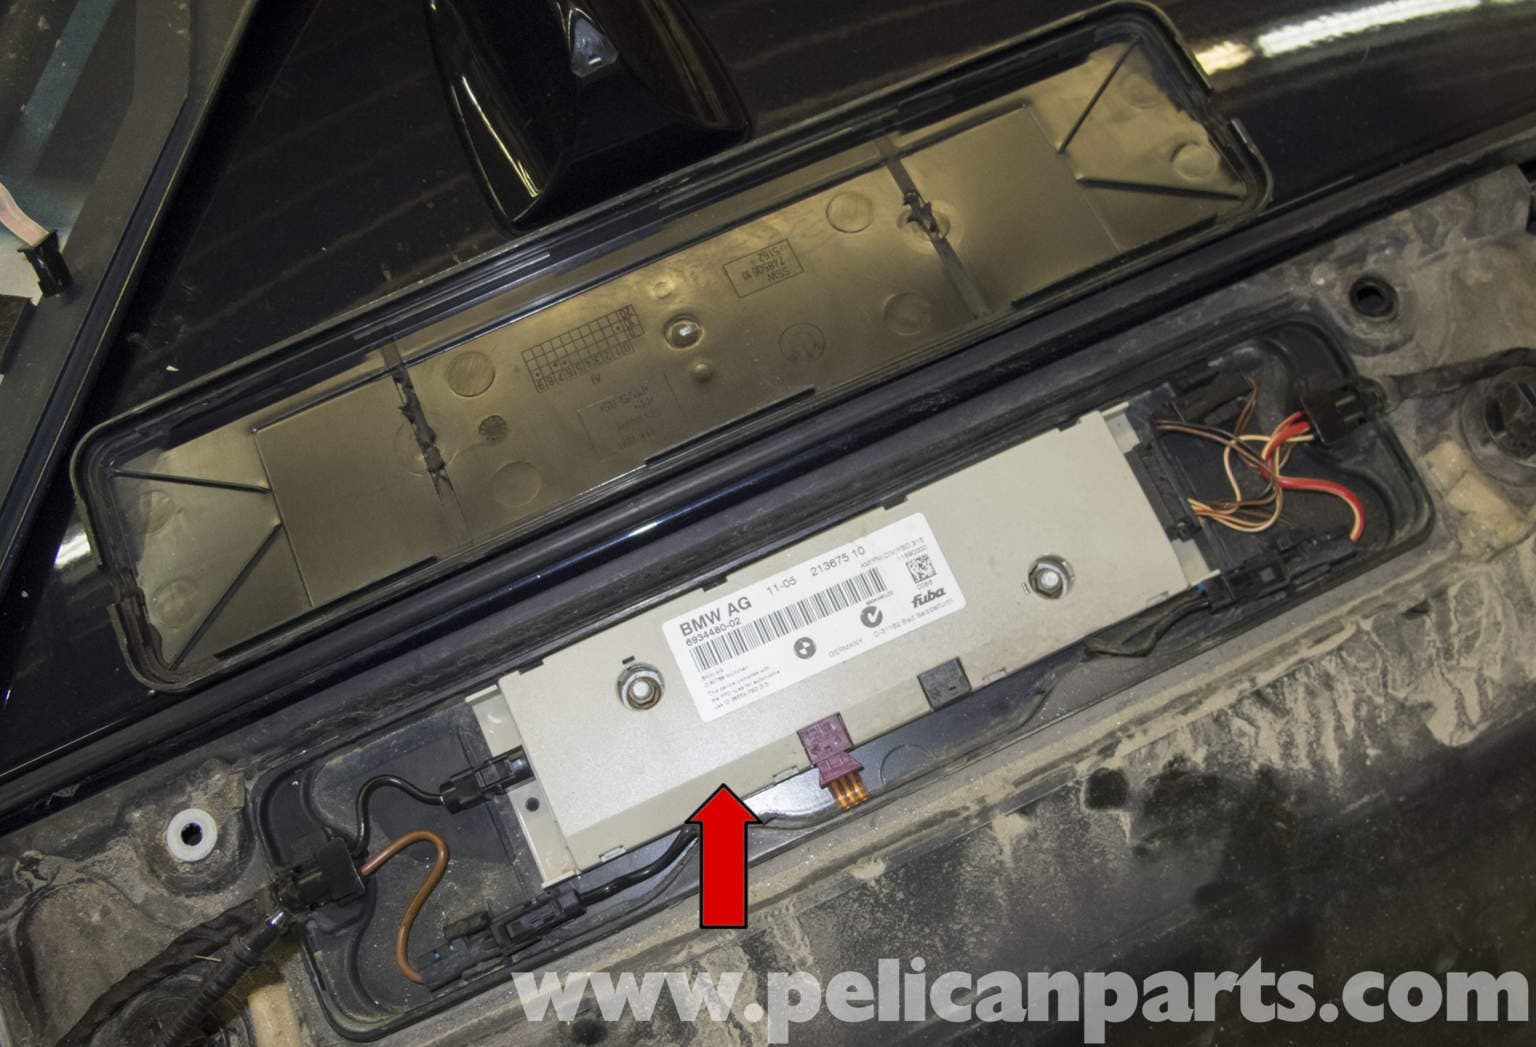 Bmw E60 5 Series Remote Key Antenna Signal Booster Pelican Parts Technical Article